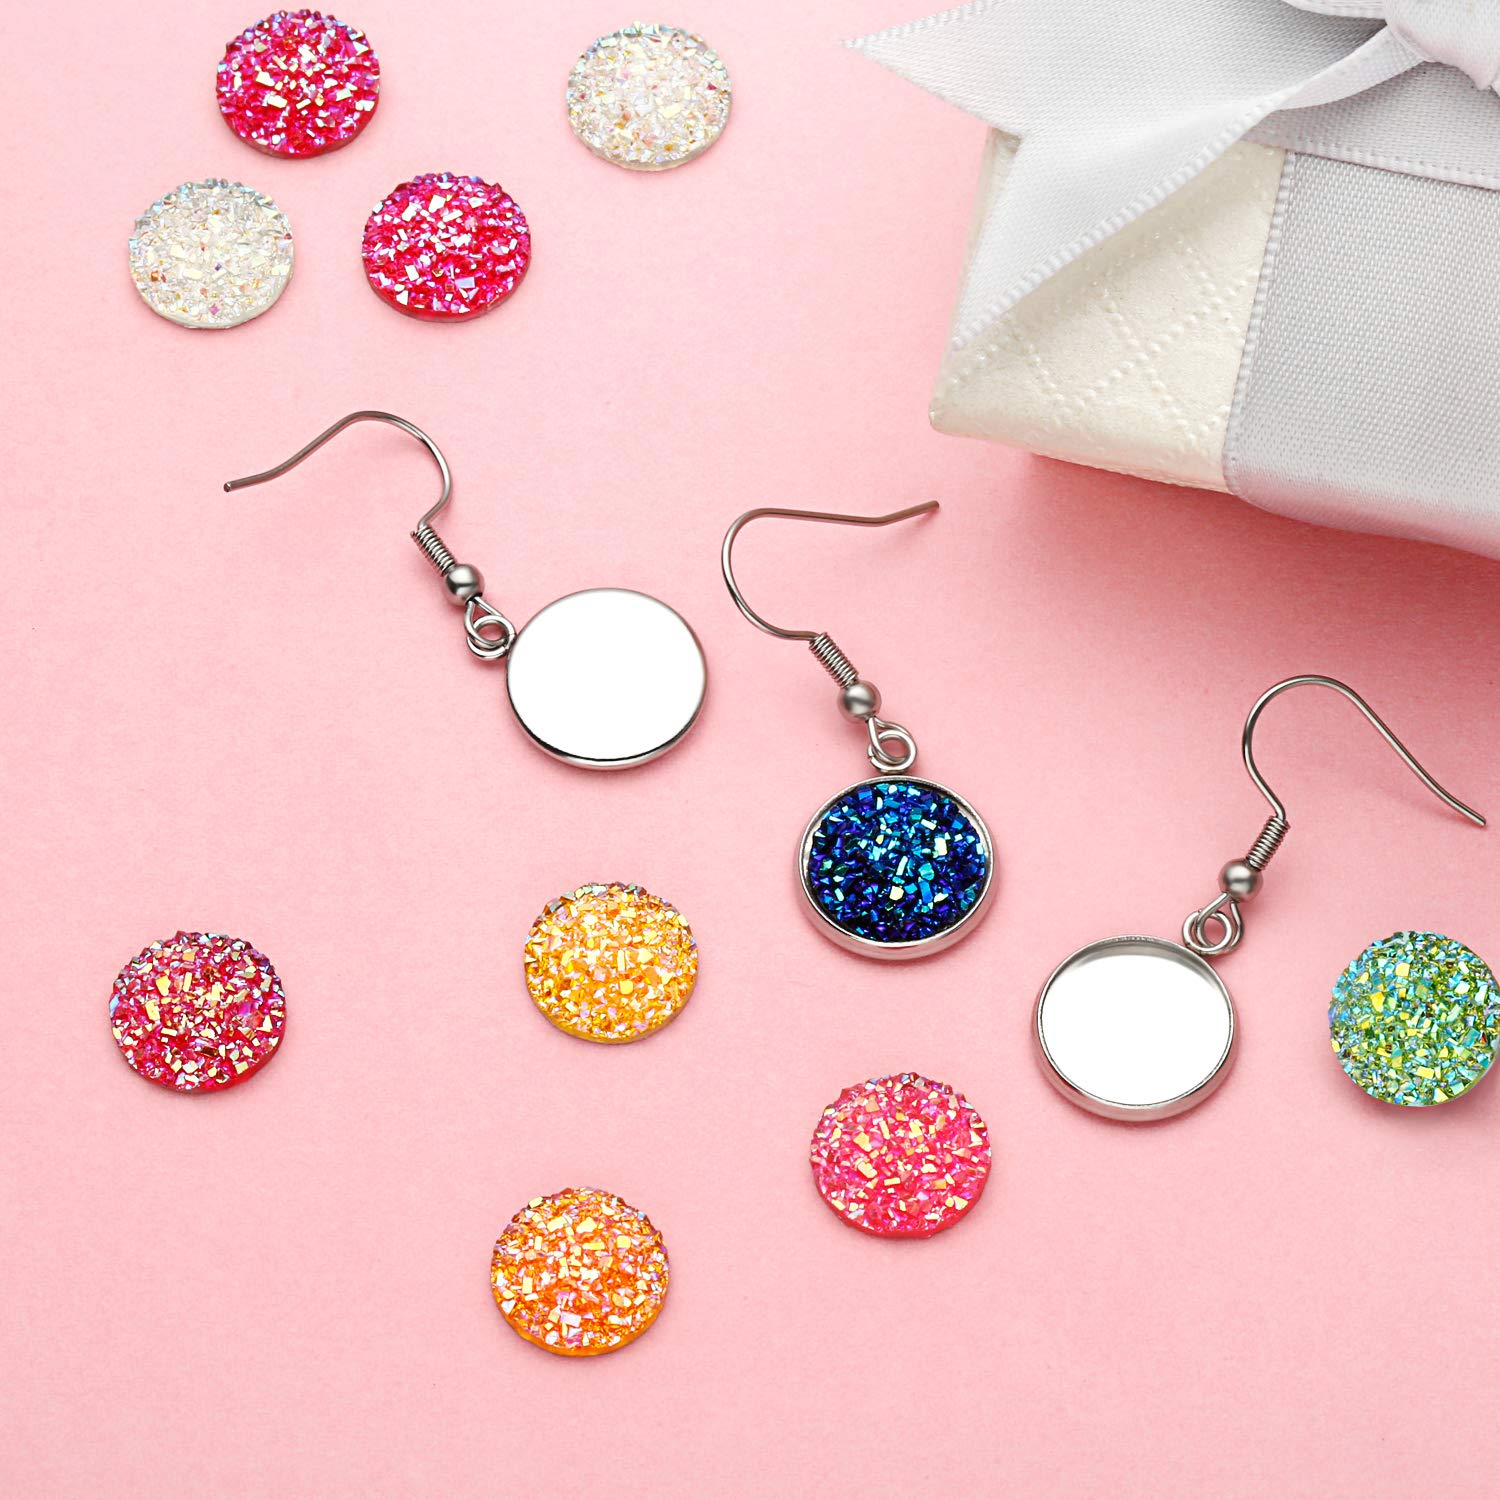 DIY Craft 200 Pieces 20 Colors 12 mm Resin Cabochons Faux Druzy Cabochons Flat Back Dome Cabochons and 40 Pieces Stainless Steel Earring Wire Hooks Blanks for Jewelry Making